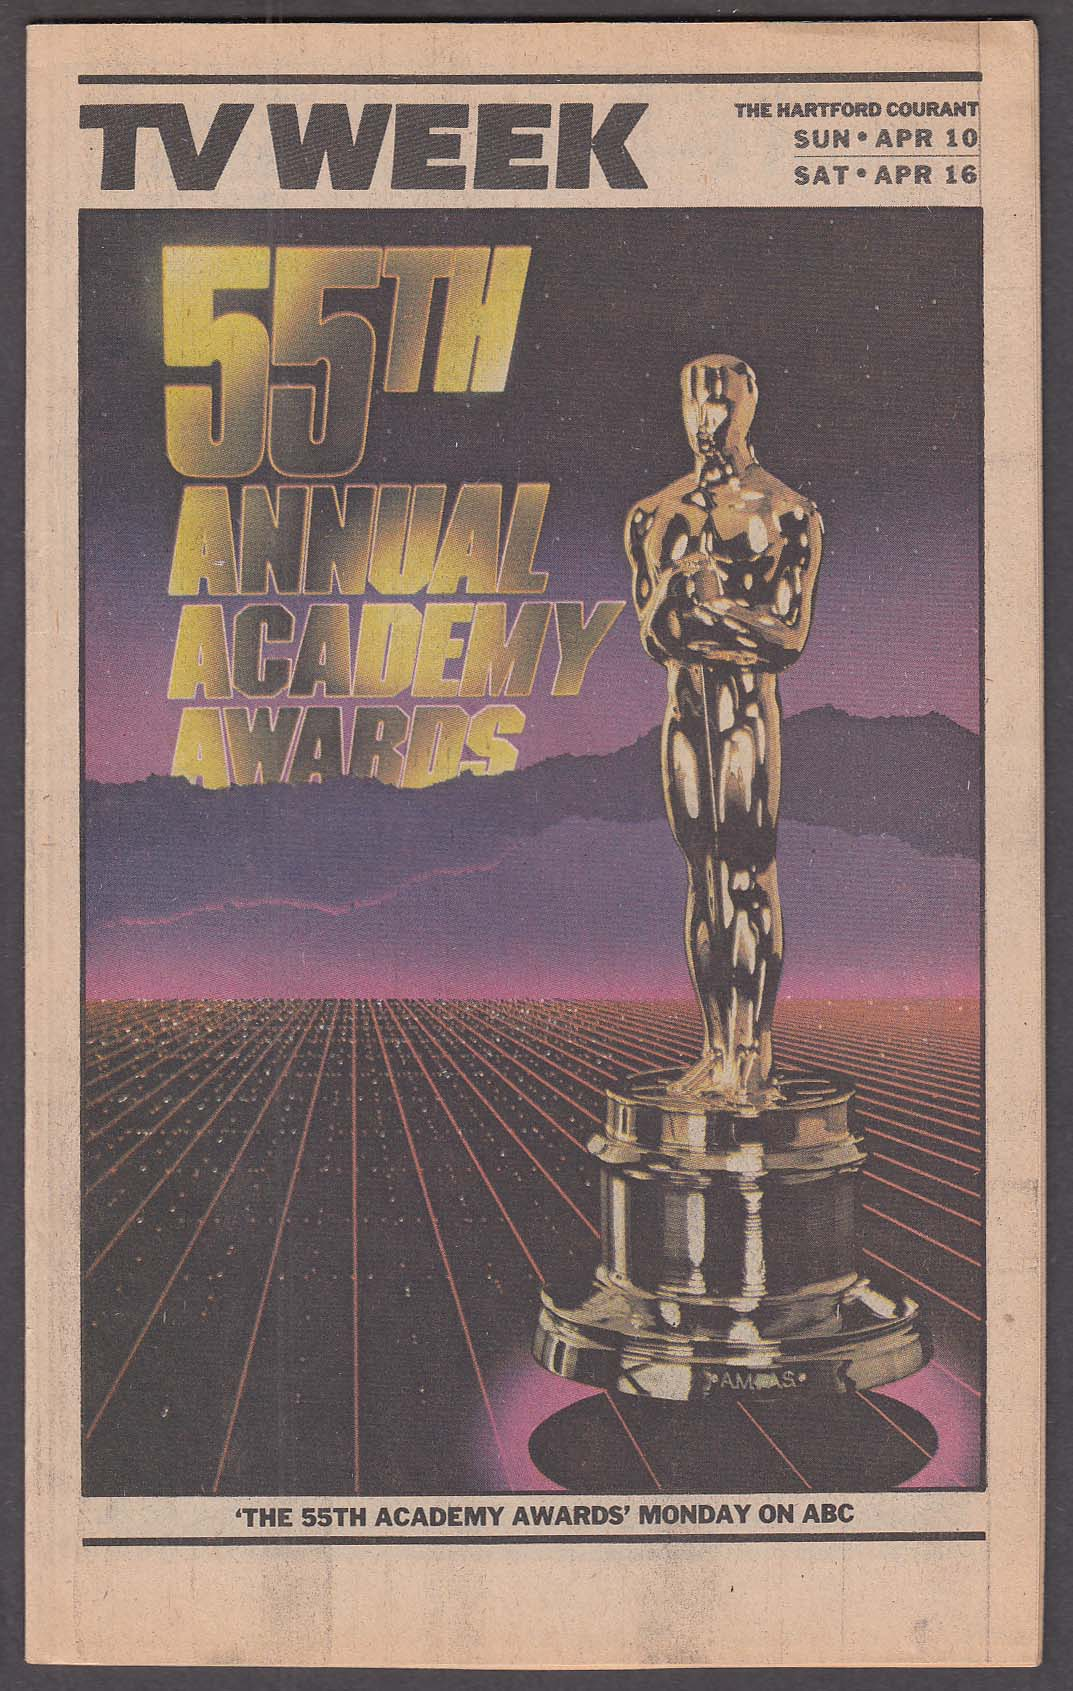 Image for TV WEEK 55th Annual Academy Awards Oscars Hartford Courant 4/10 1983